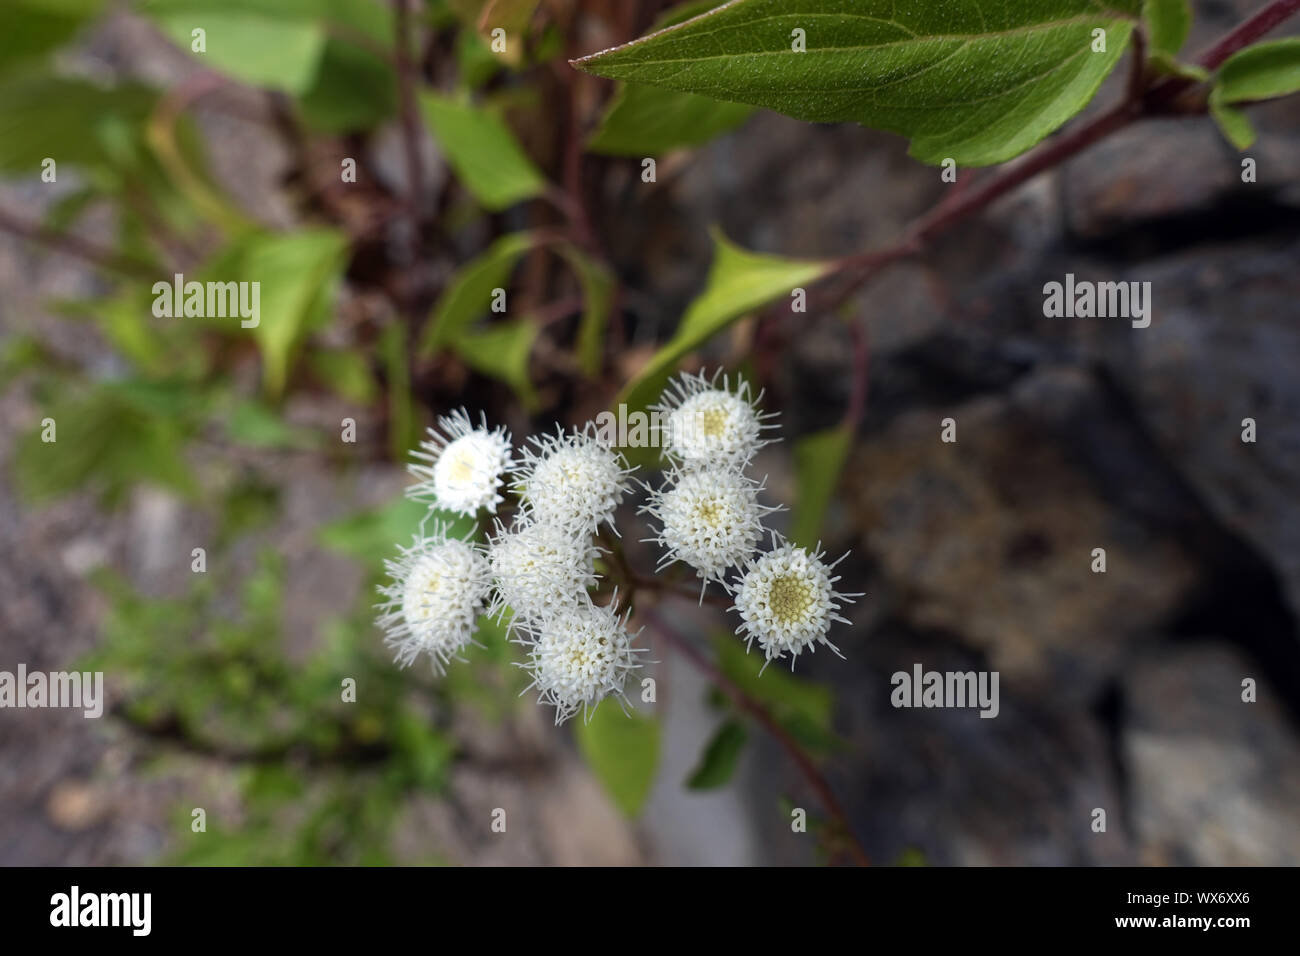 crofton weed or sticky snakeroot (Ageratina adenophora), Neophyte in the Canary Islands Stock Photo